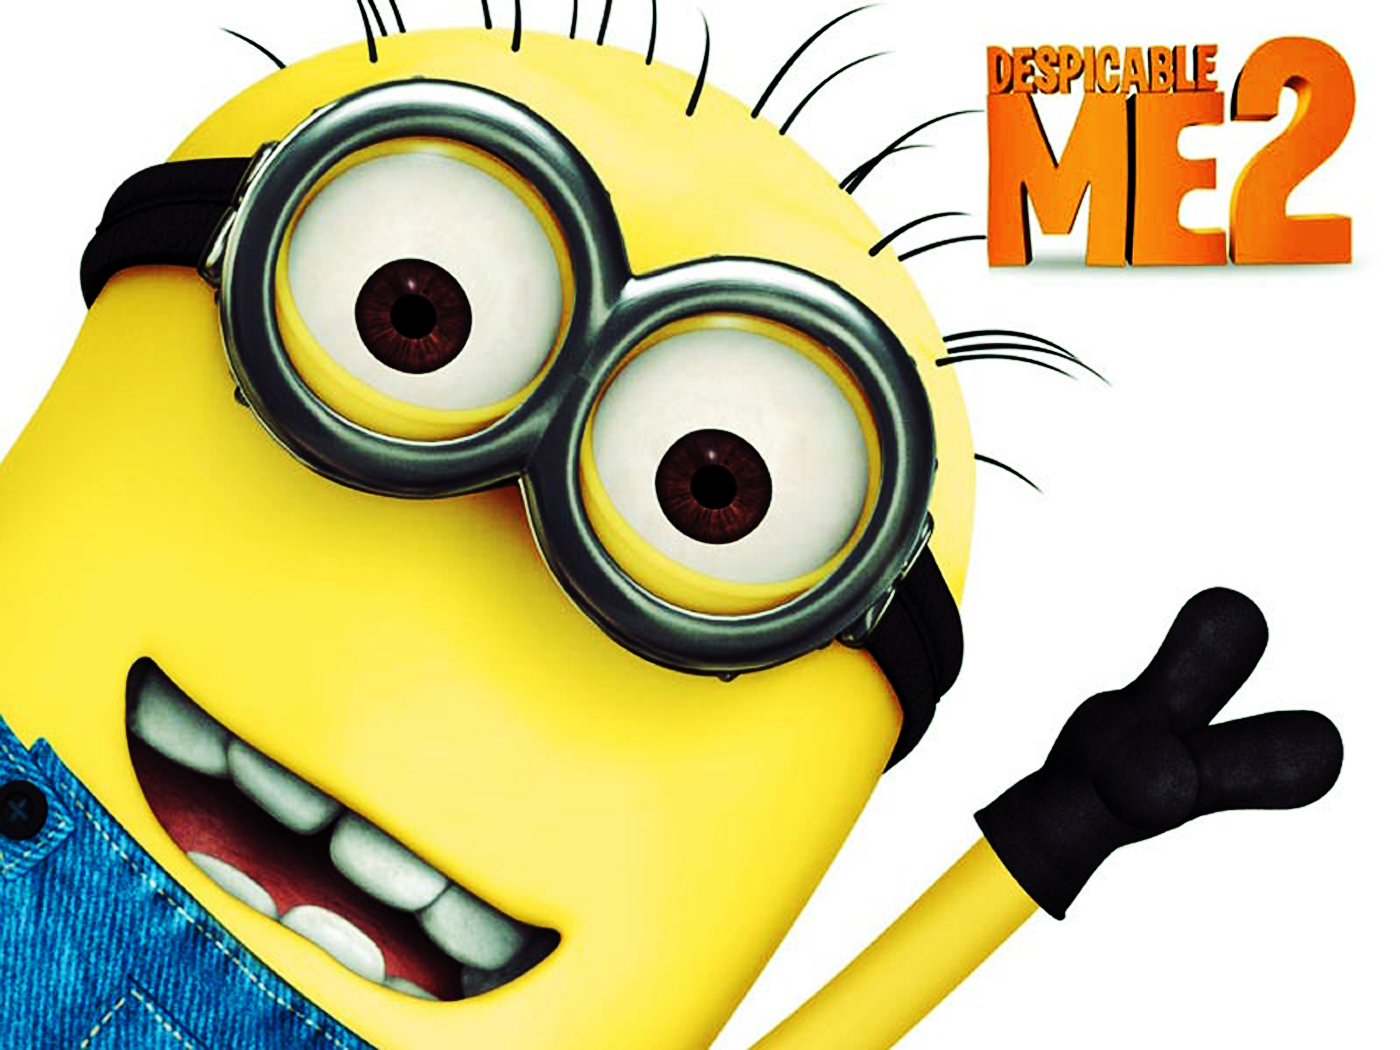 despicable me minions wallpapers - photo #10